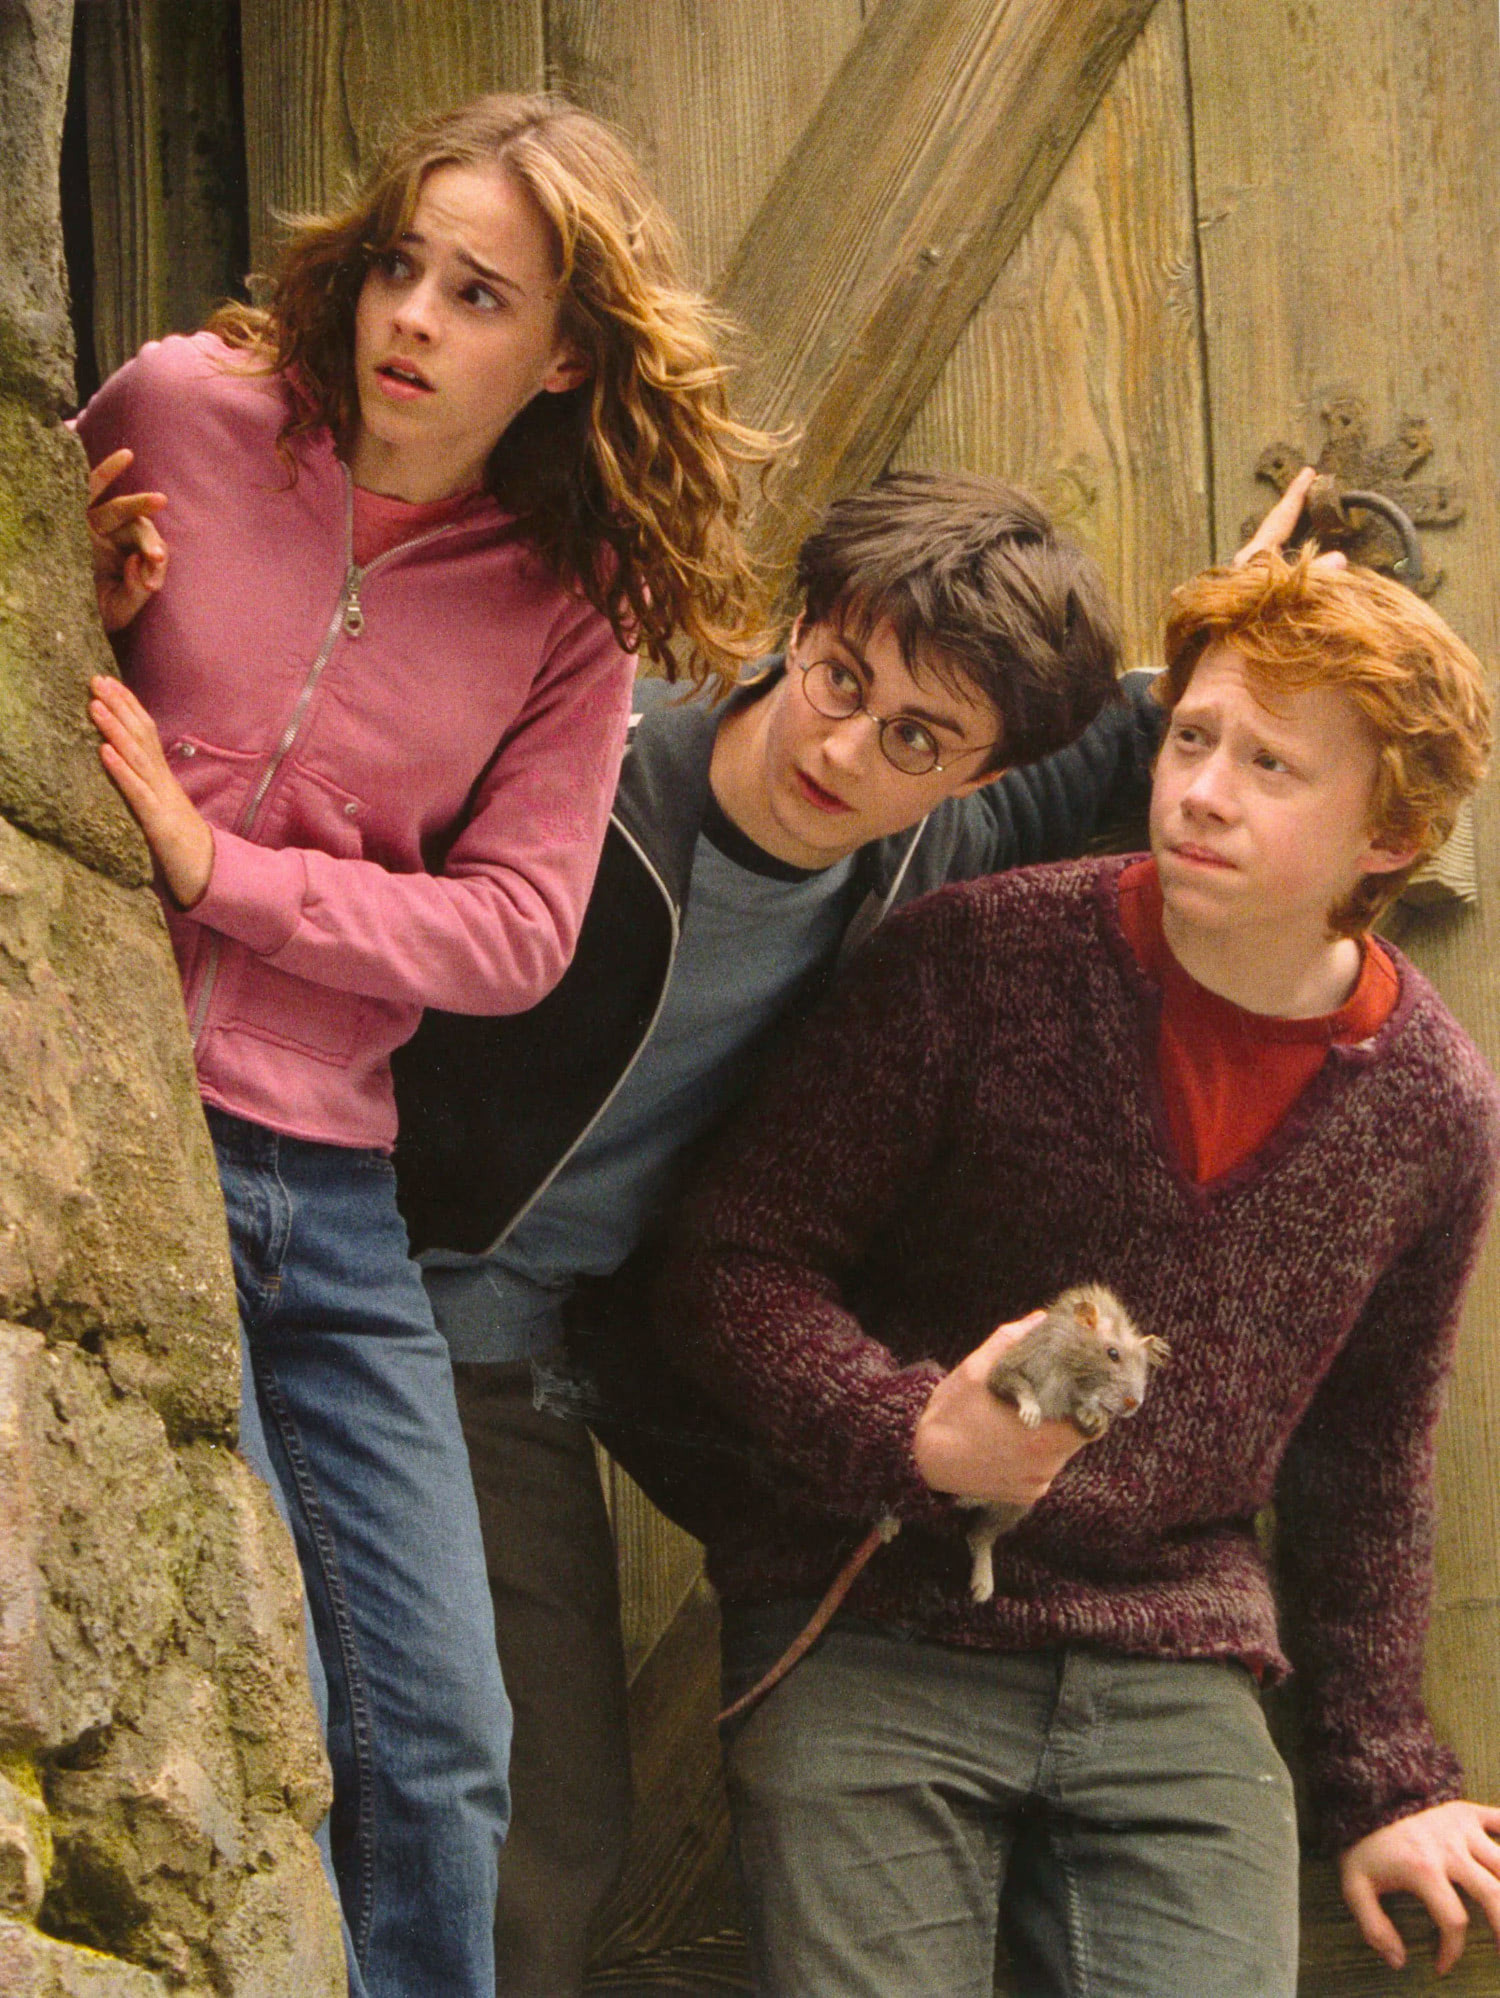 The trio look out of Hagrid's Hut